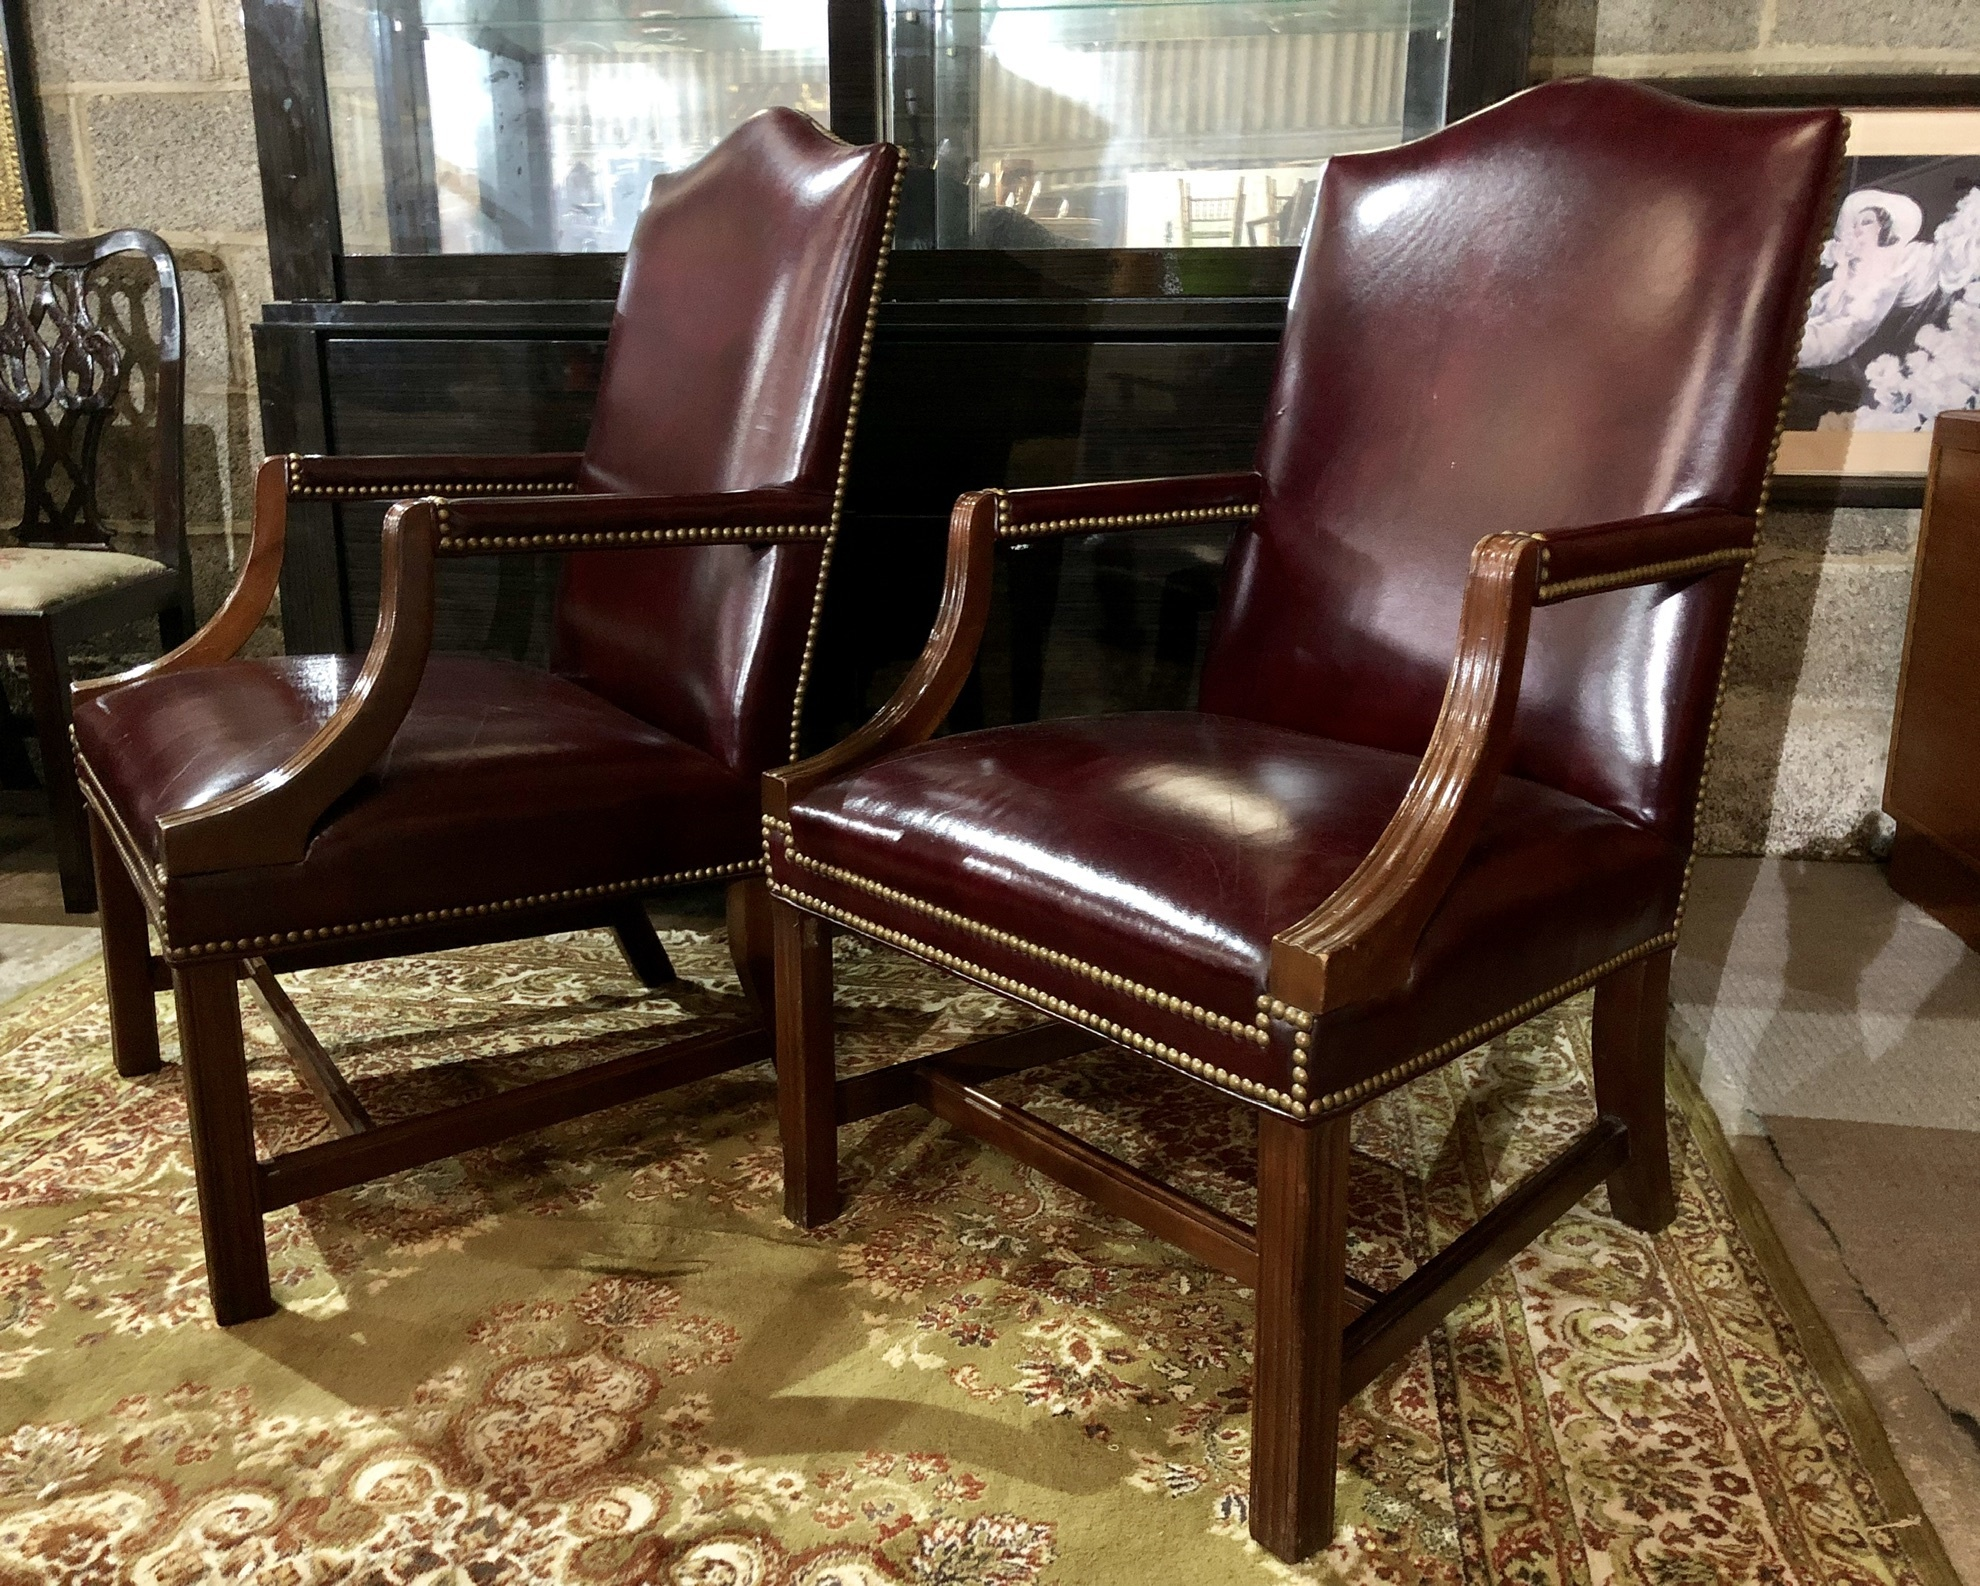 Miraculous Pair Of Elegant Hancock Moore Studded Leather Jefferson Side Armchairs Gmtry Best Dining Table And Chair Ideas Images Gmtryco